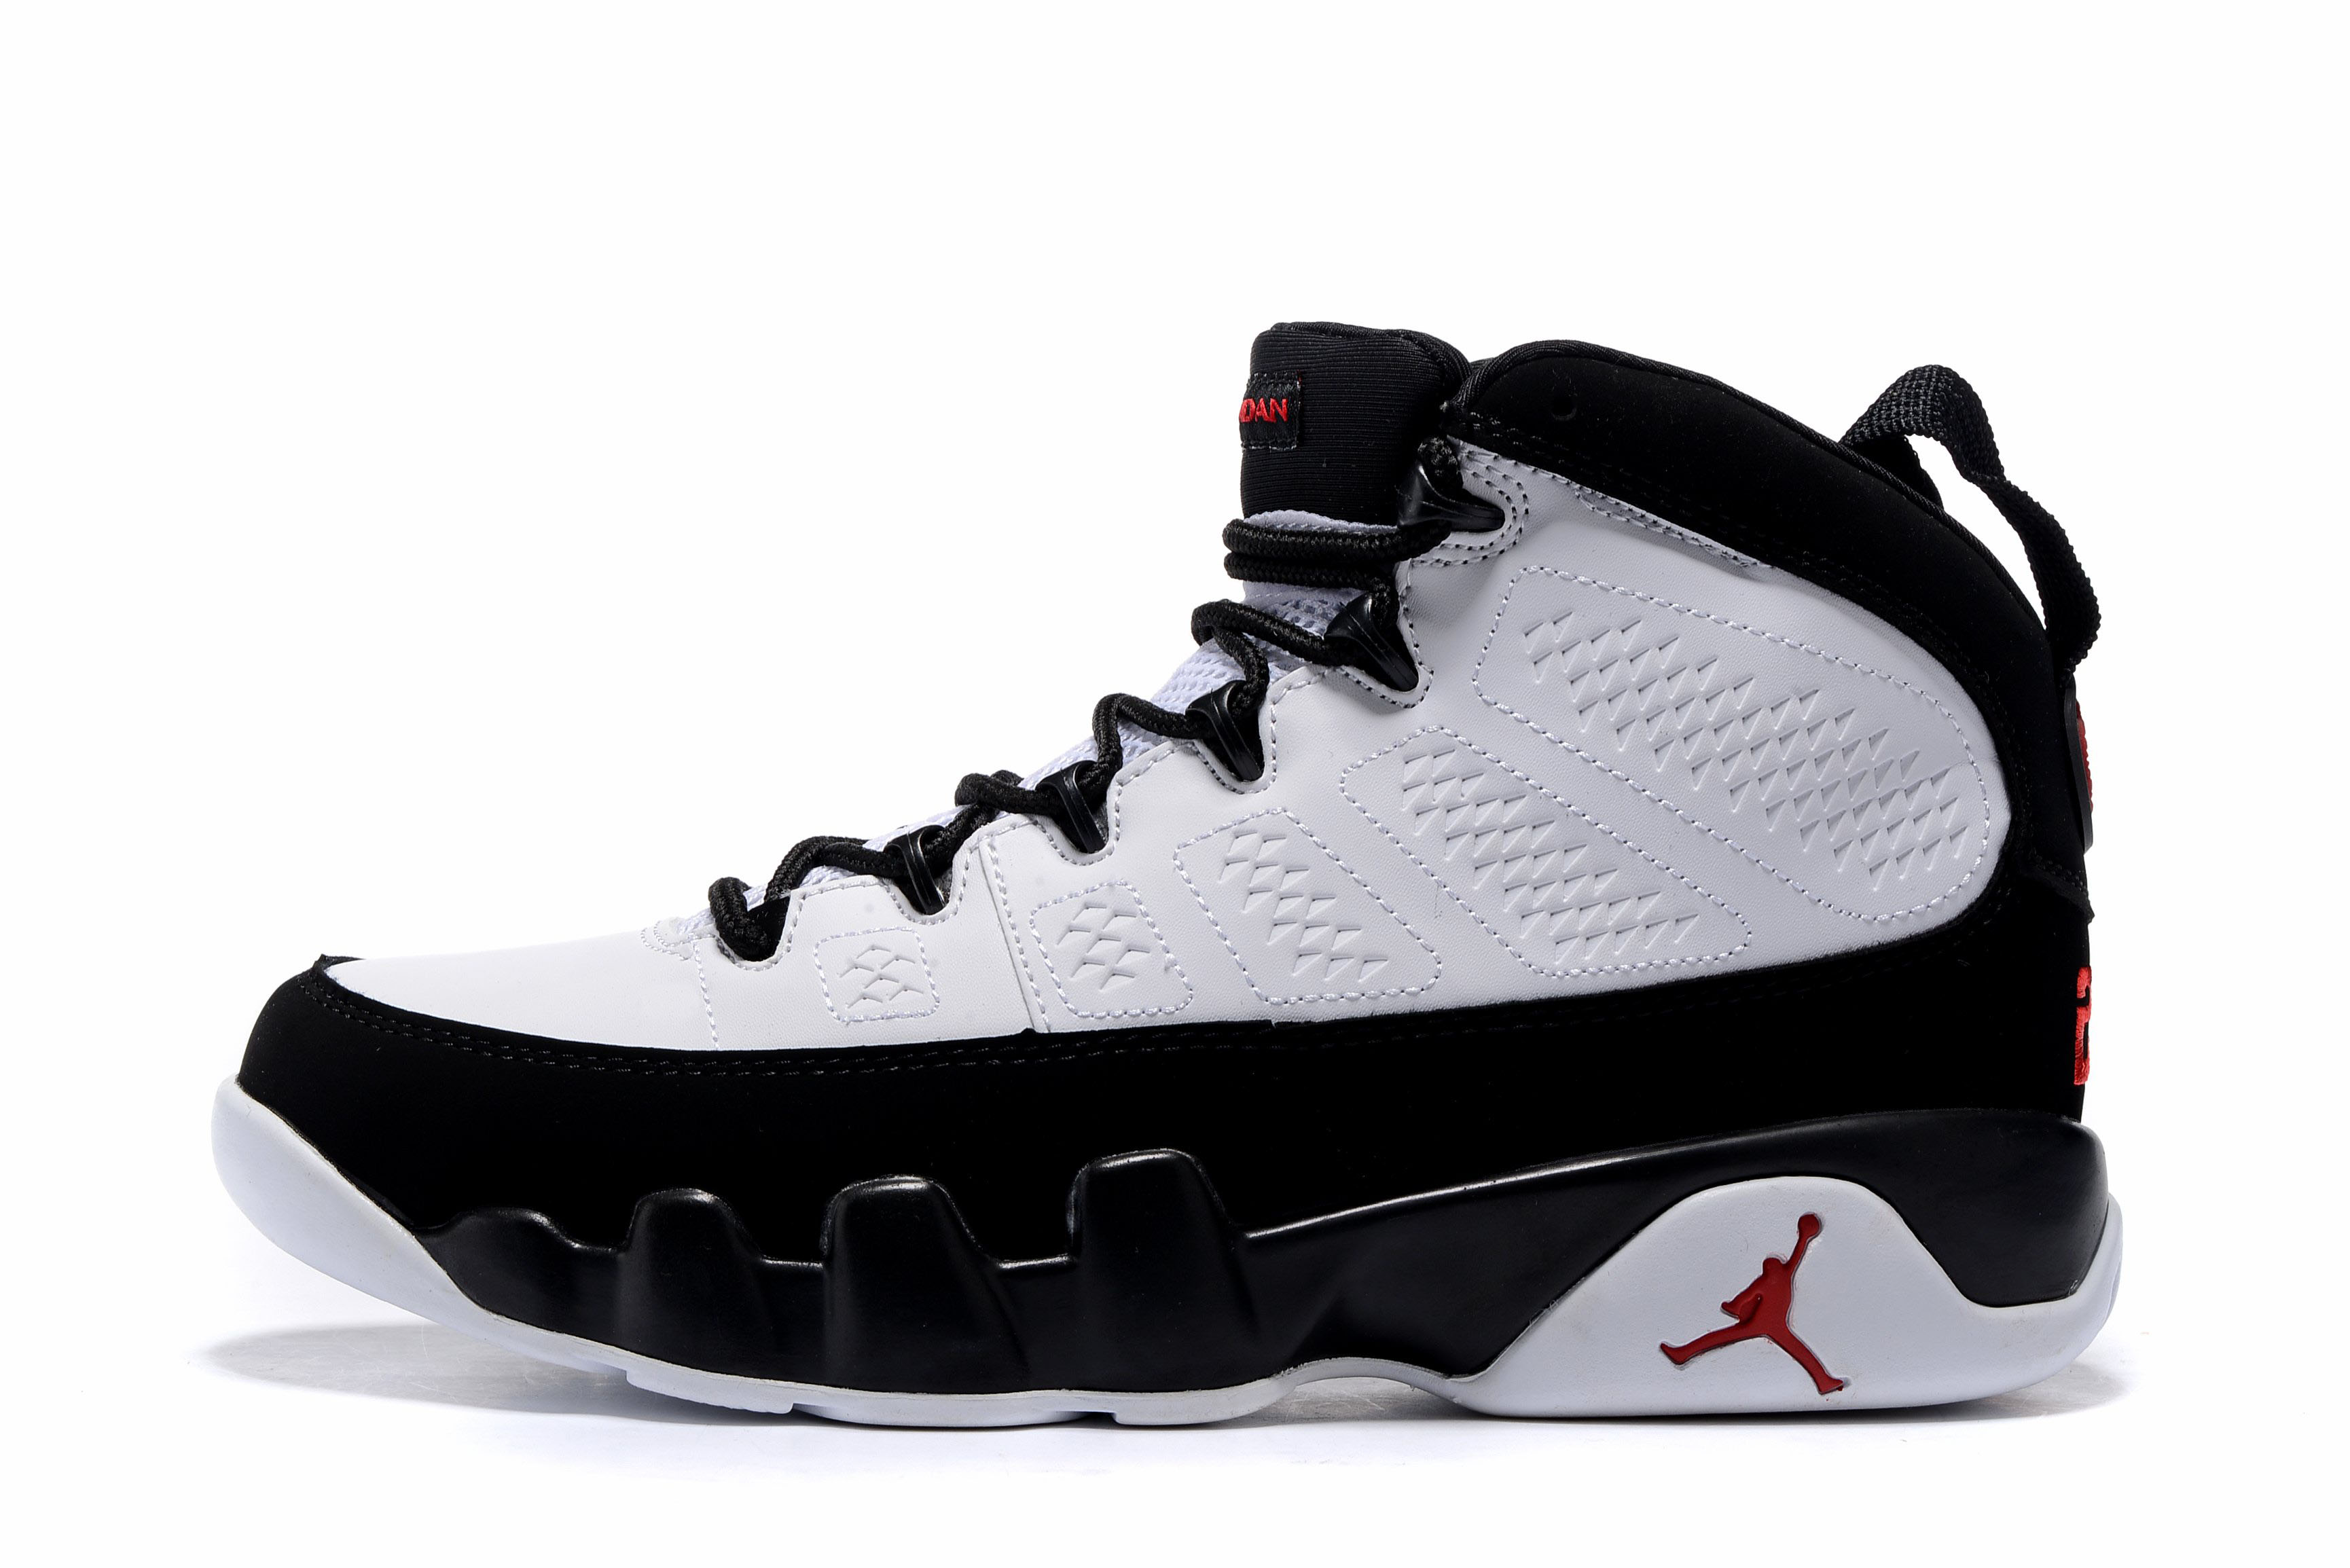 Air Jordan 9 Retro Space Jam White/True Red-Black 302370-112